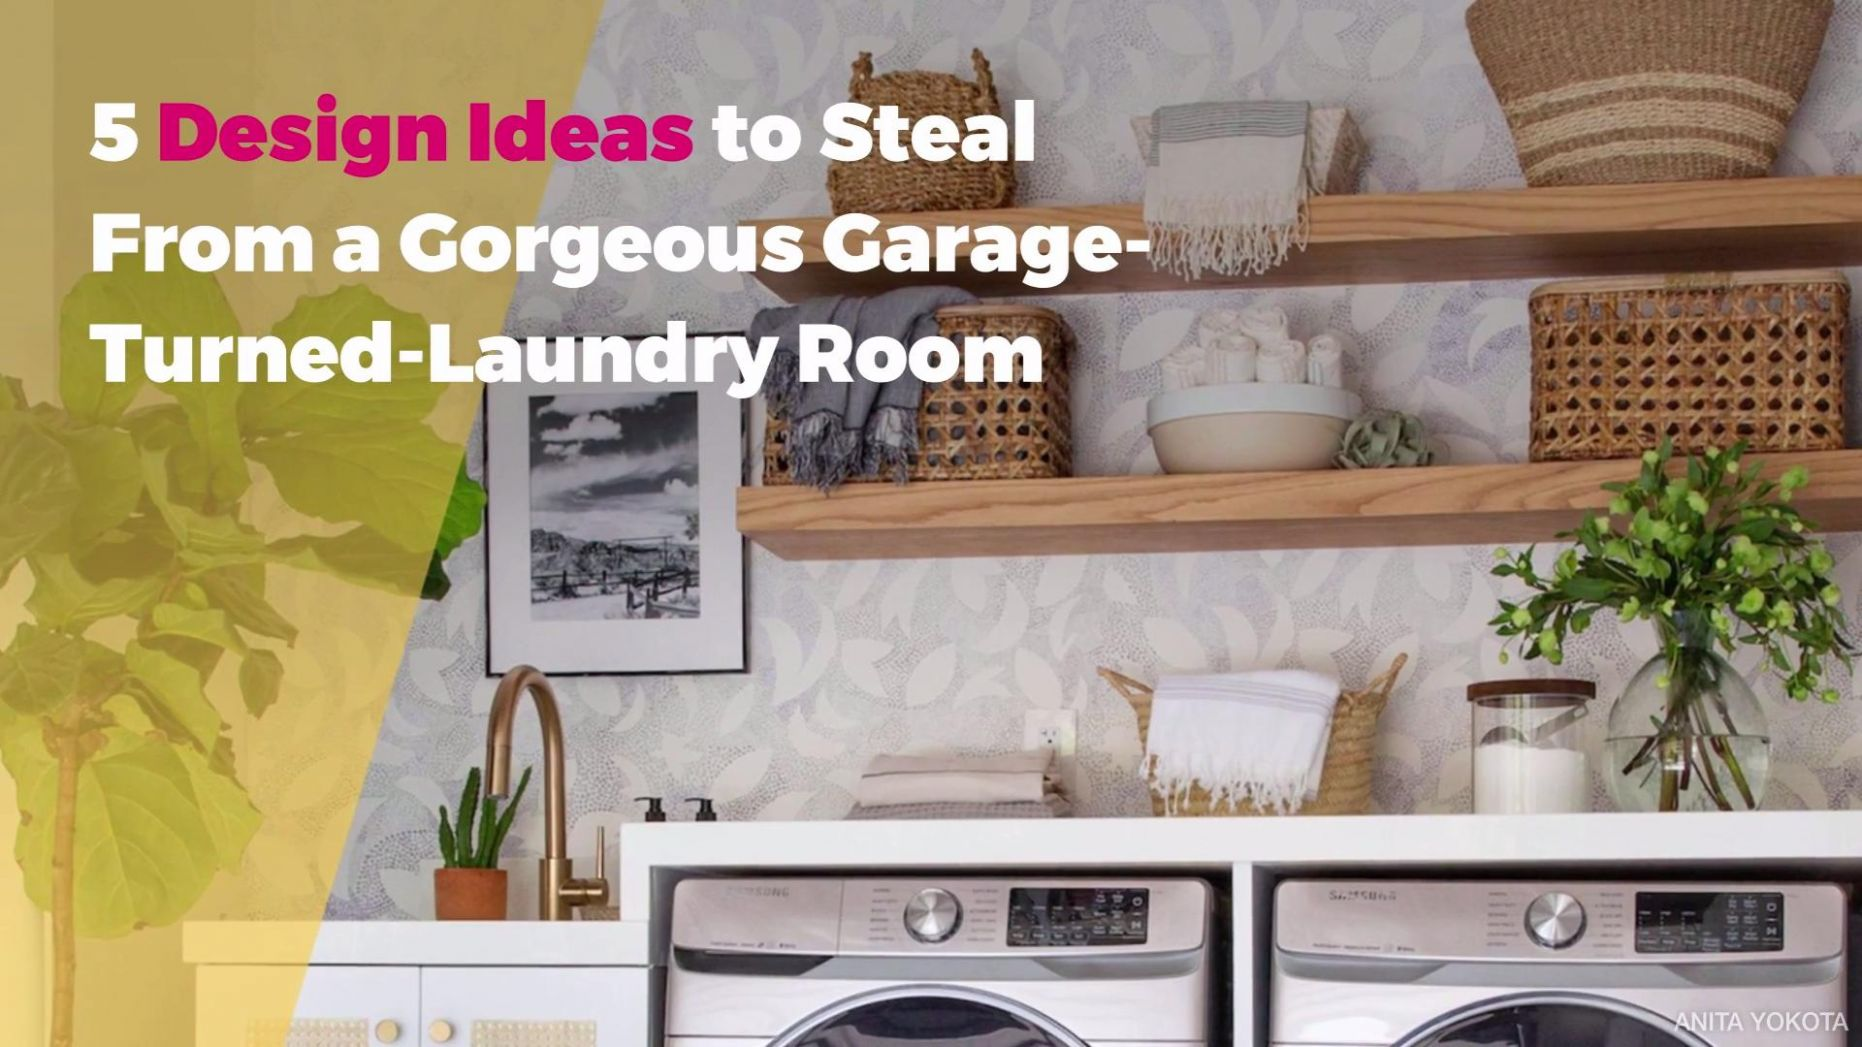 8 Design Ideas to Steal From a Gorgeous Garage-Turned-Laundry Room - laundry room ideas in garage